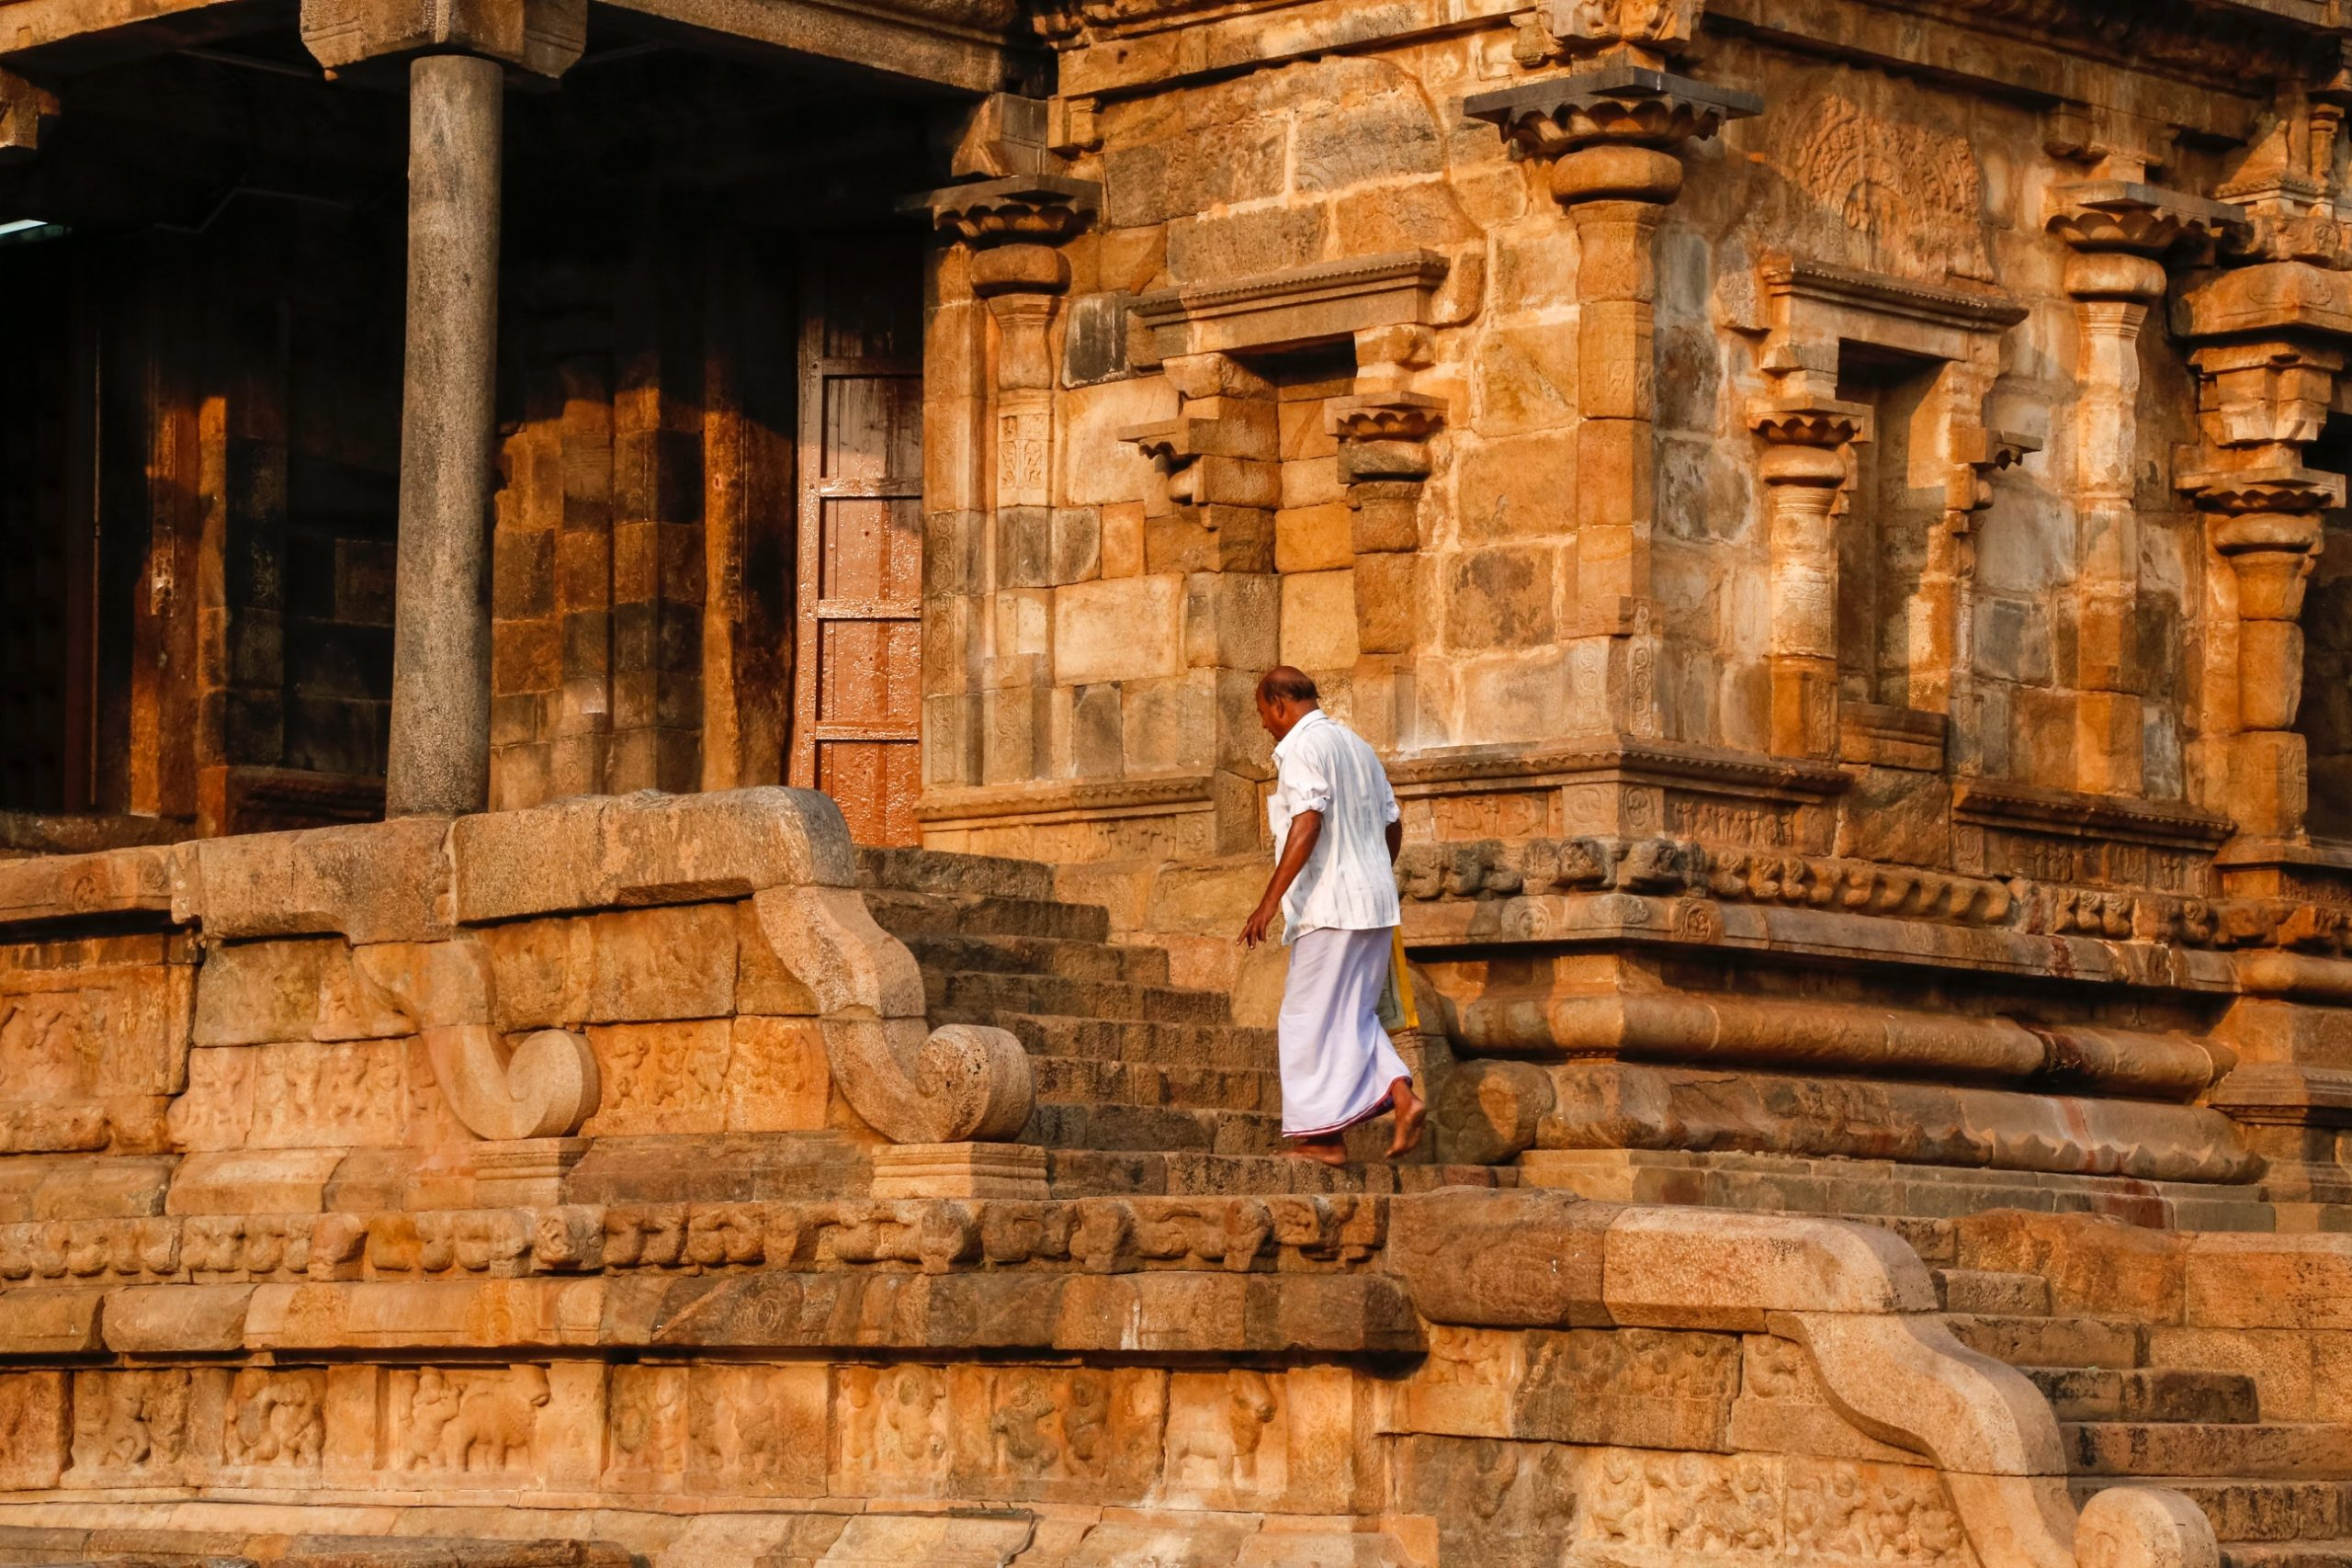 A man walking near a temple/fort